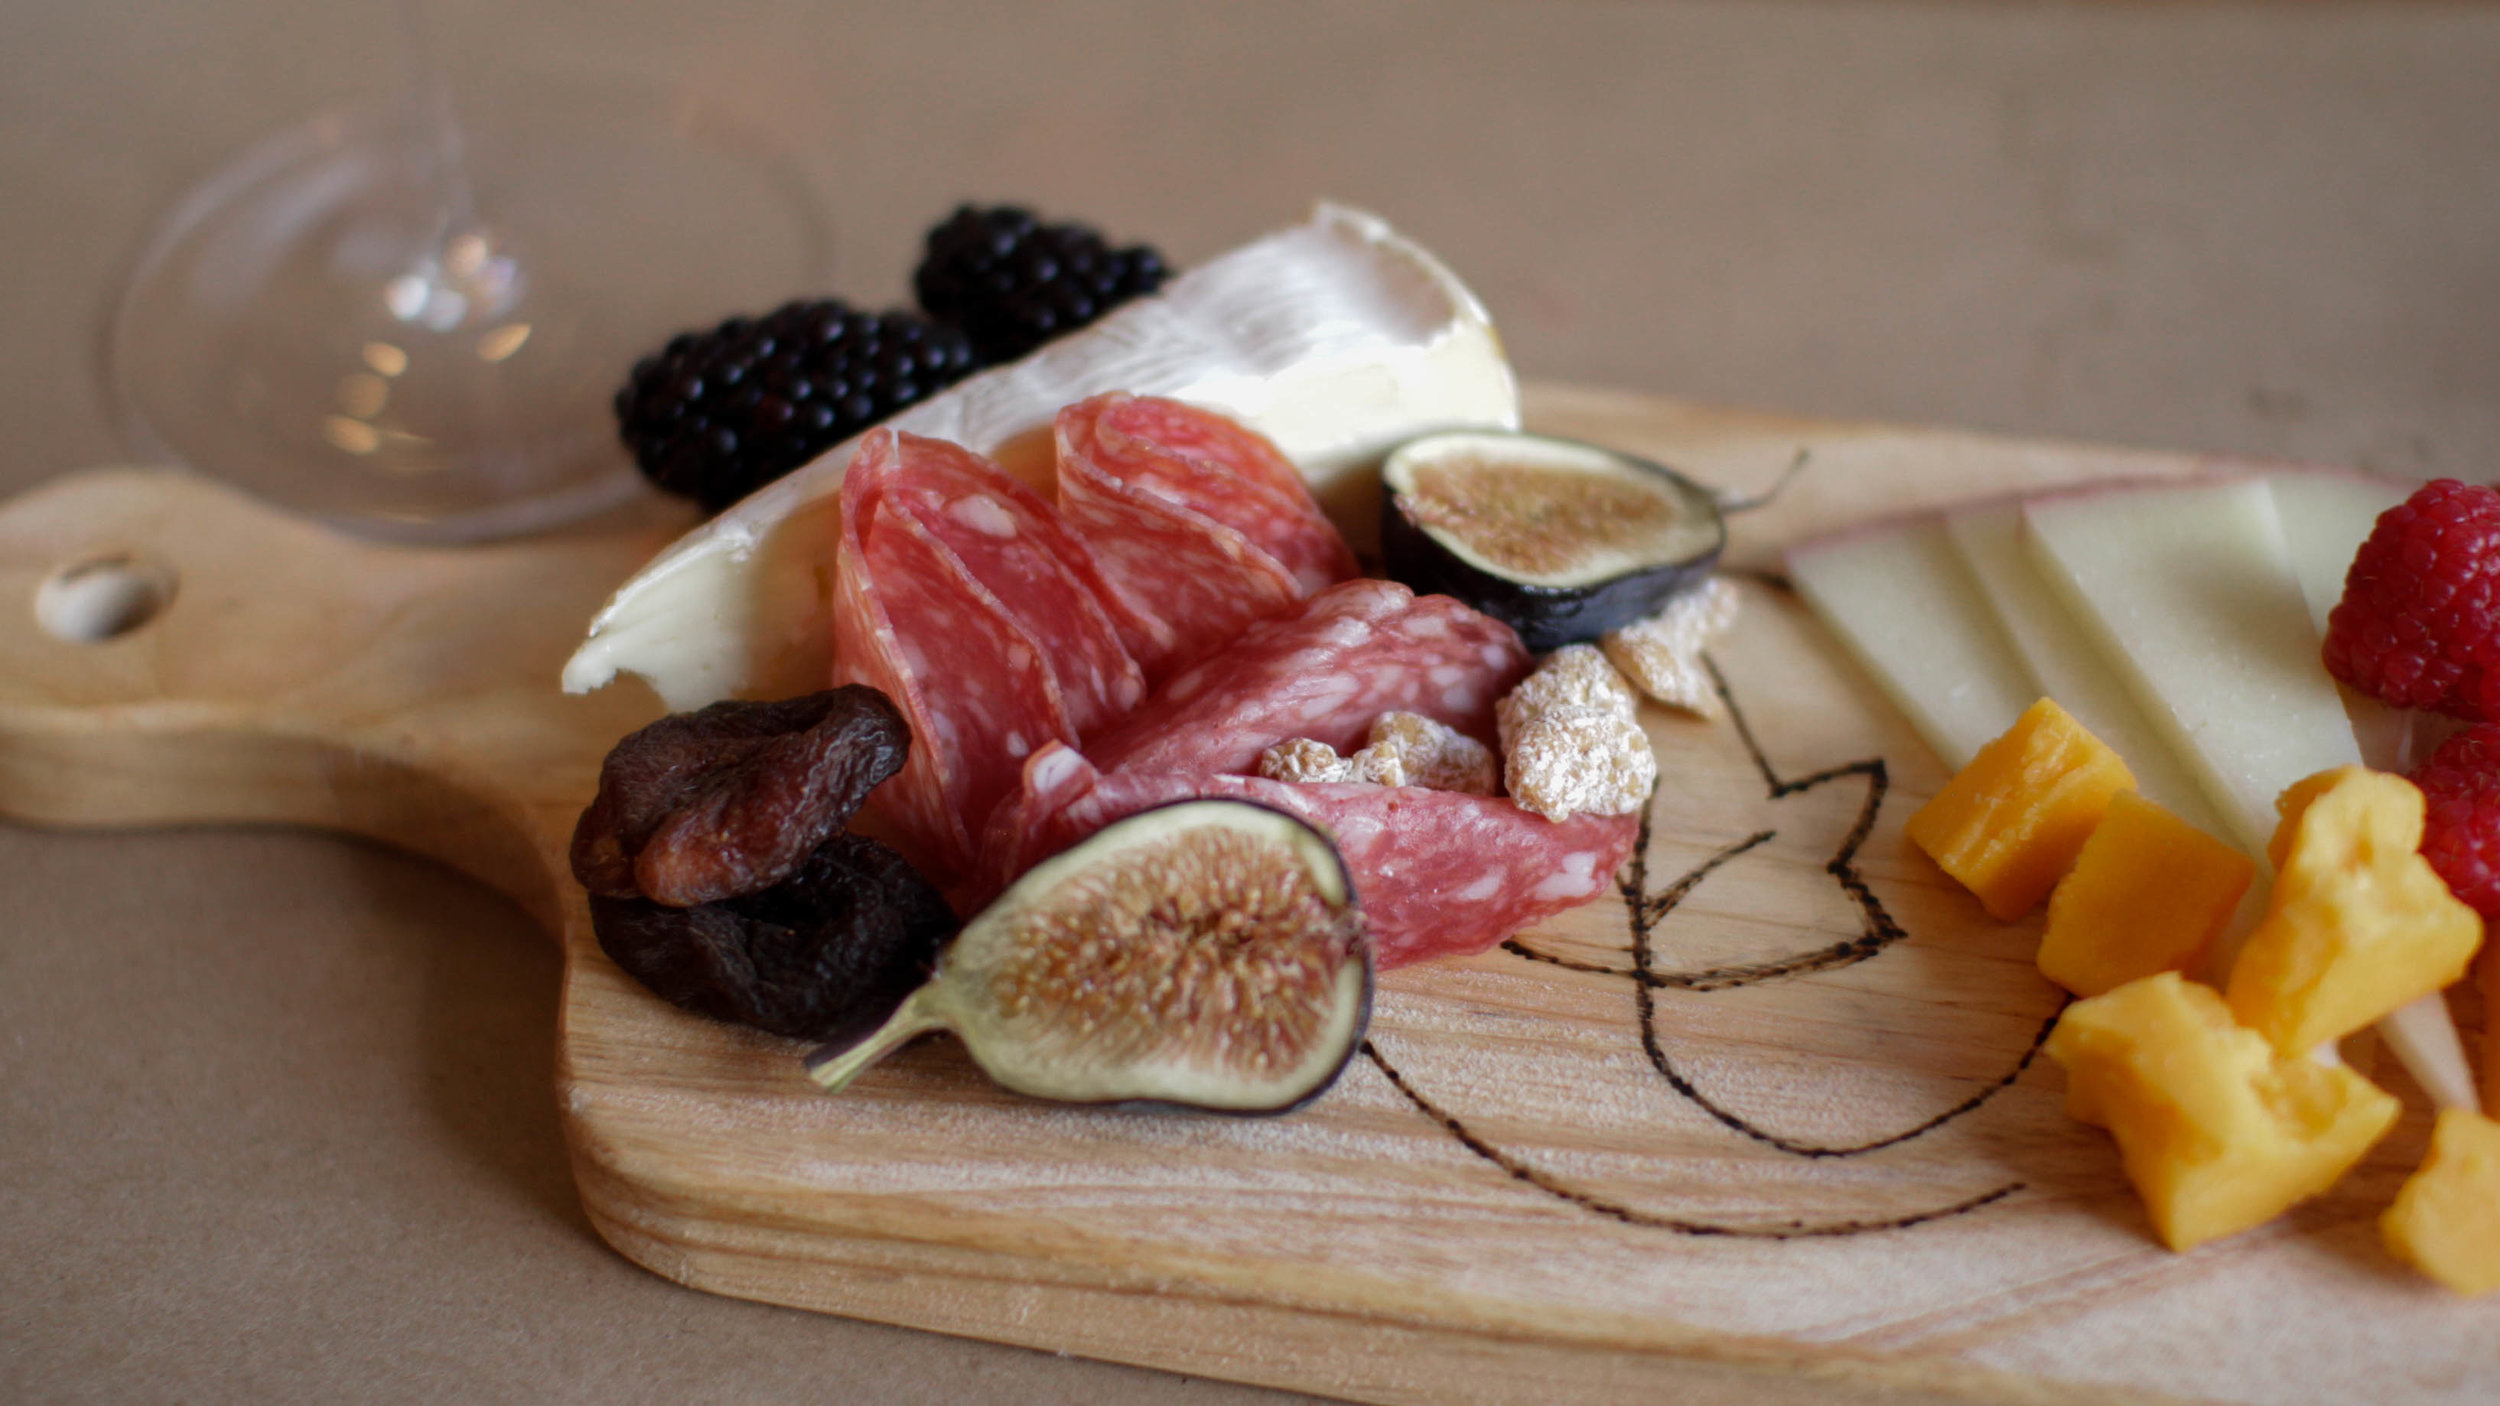 How to arrange a charcuterie board for serving